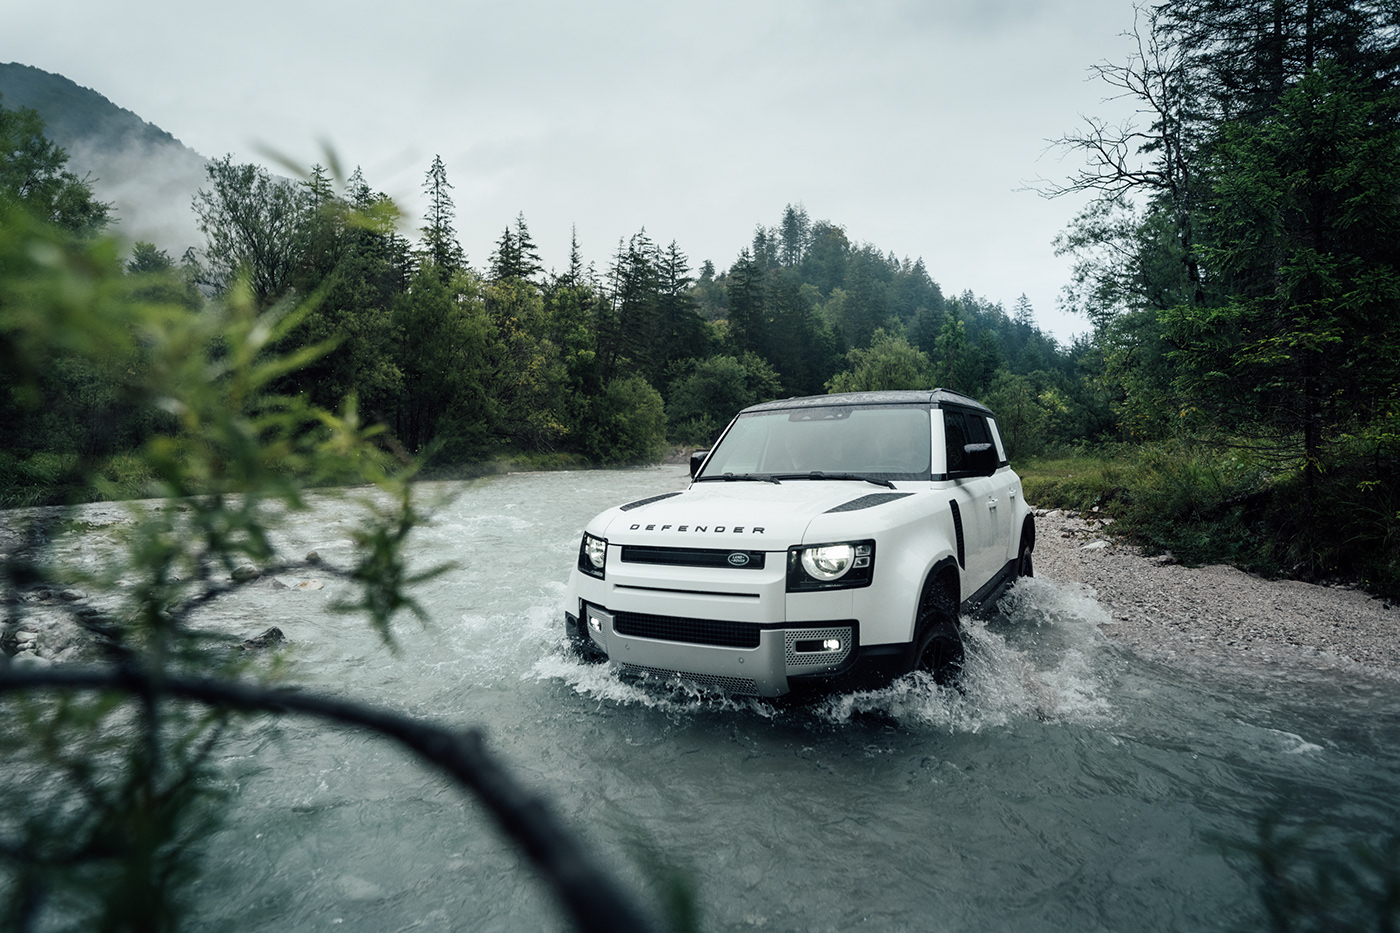 Advertising  automotive   Land Rover land rover defender new defender Offroad offroad vehicle alpine austria Automotive Photography